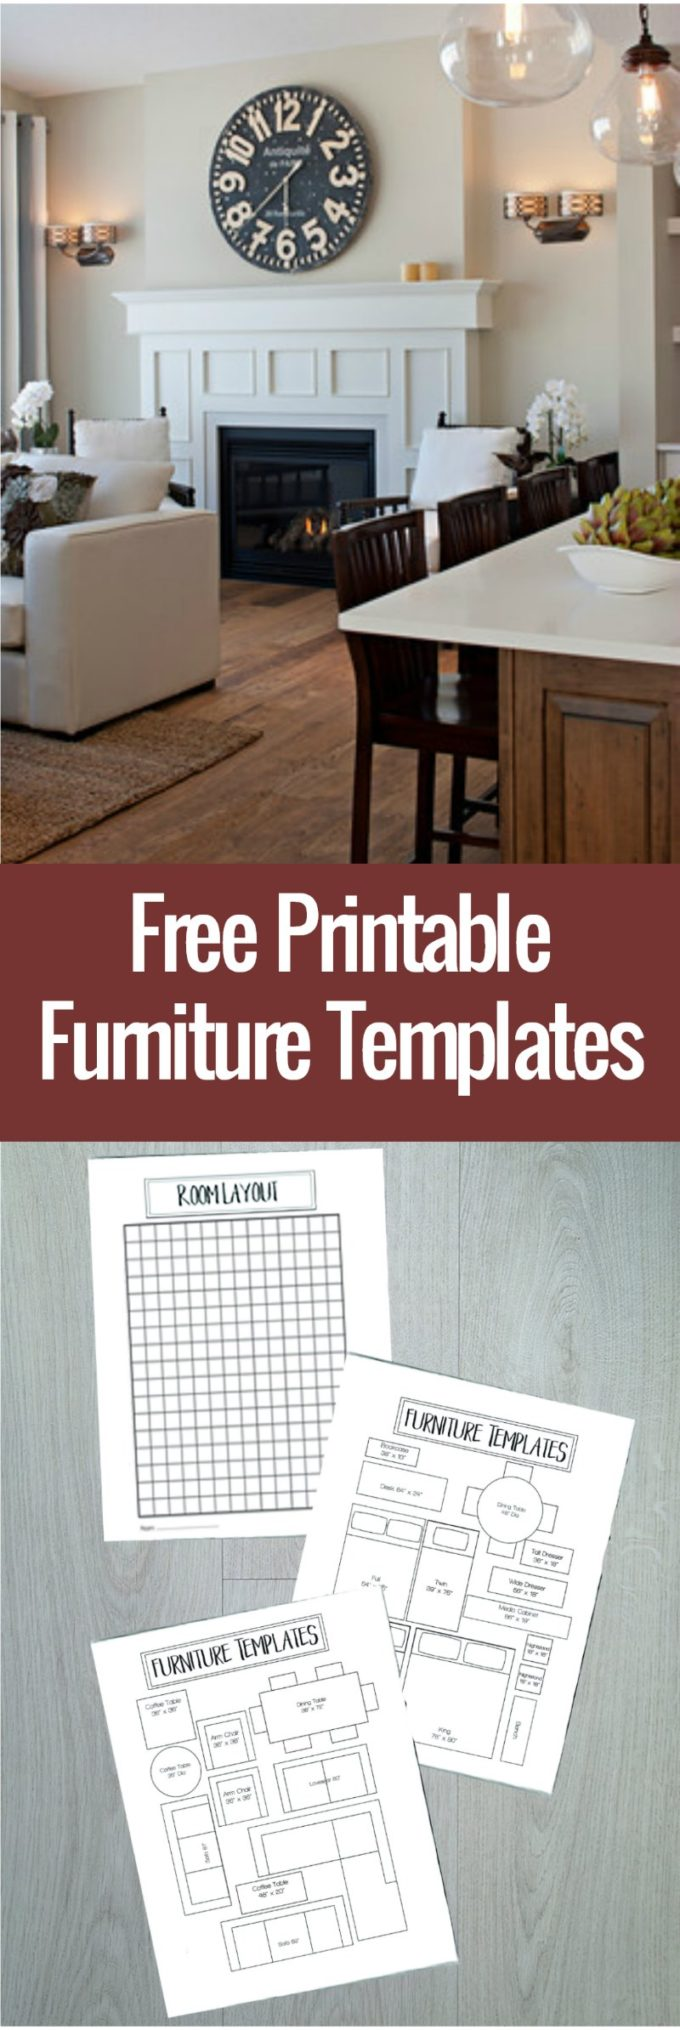 If You Are Interested, Here Are Some Great Furniture Templates From Amazon  That You Can Use As Well.